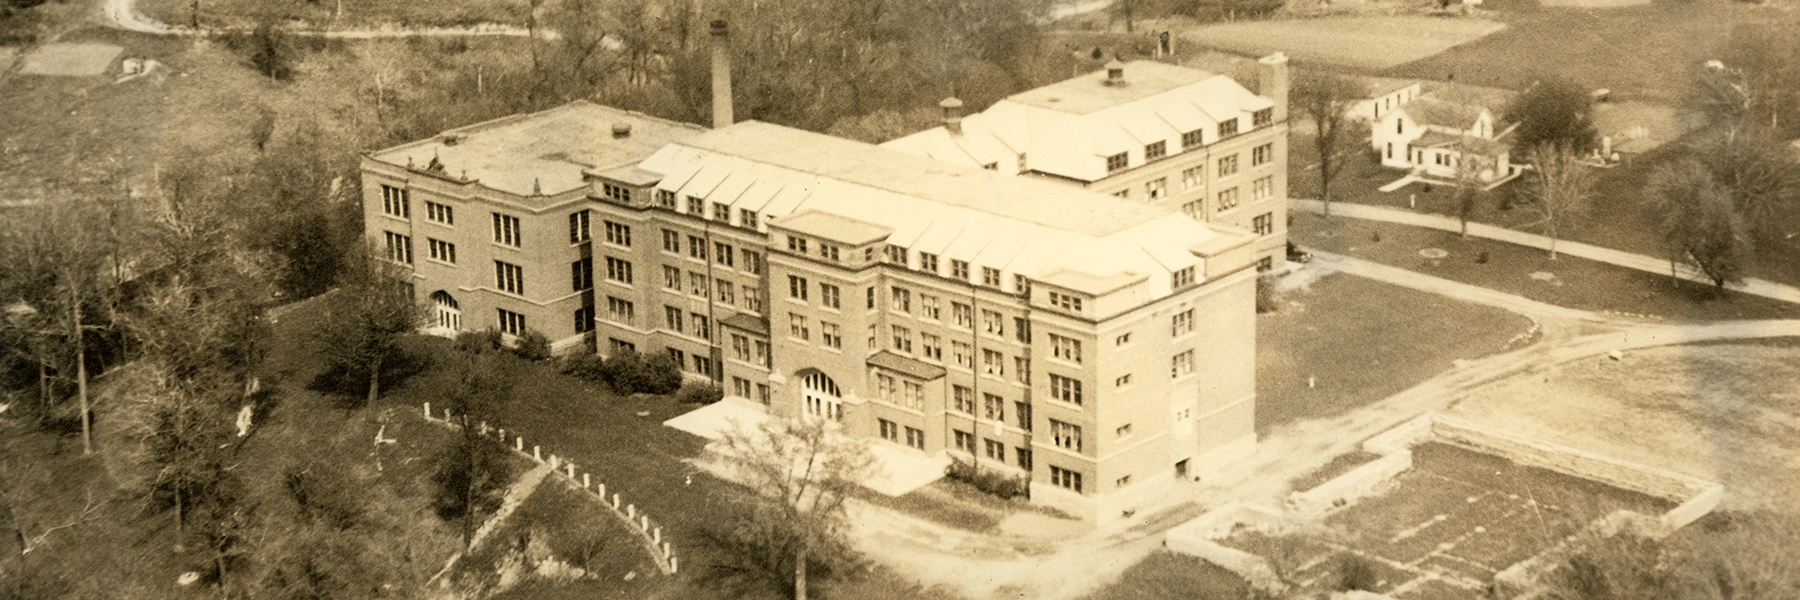 Bethany building - Old Main back in 1930s